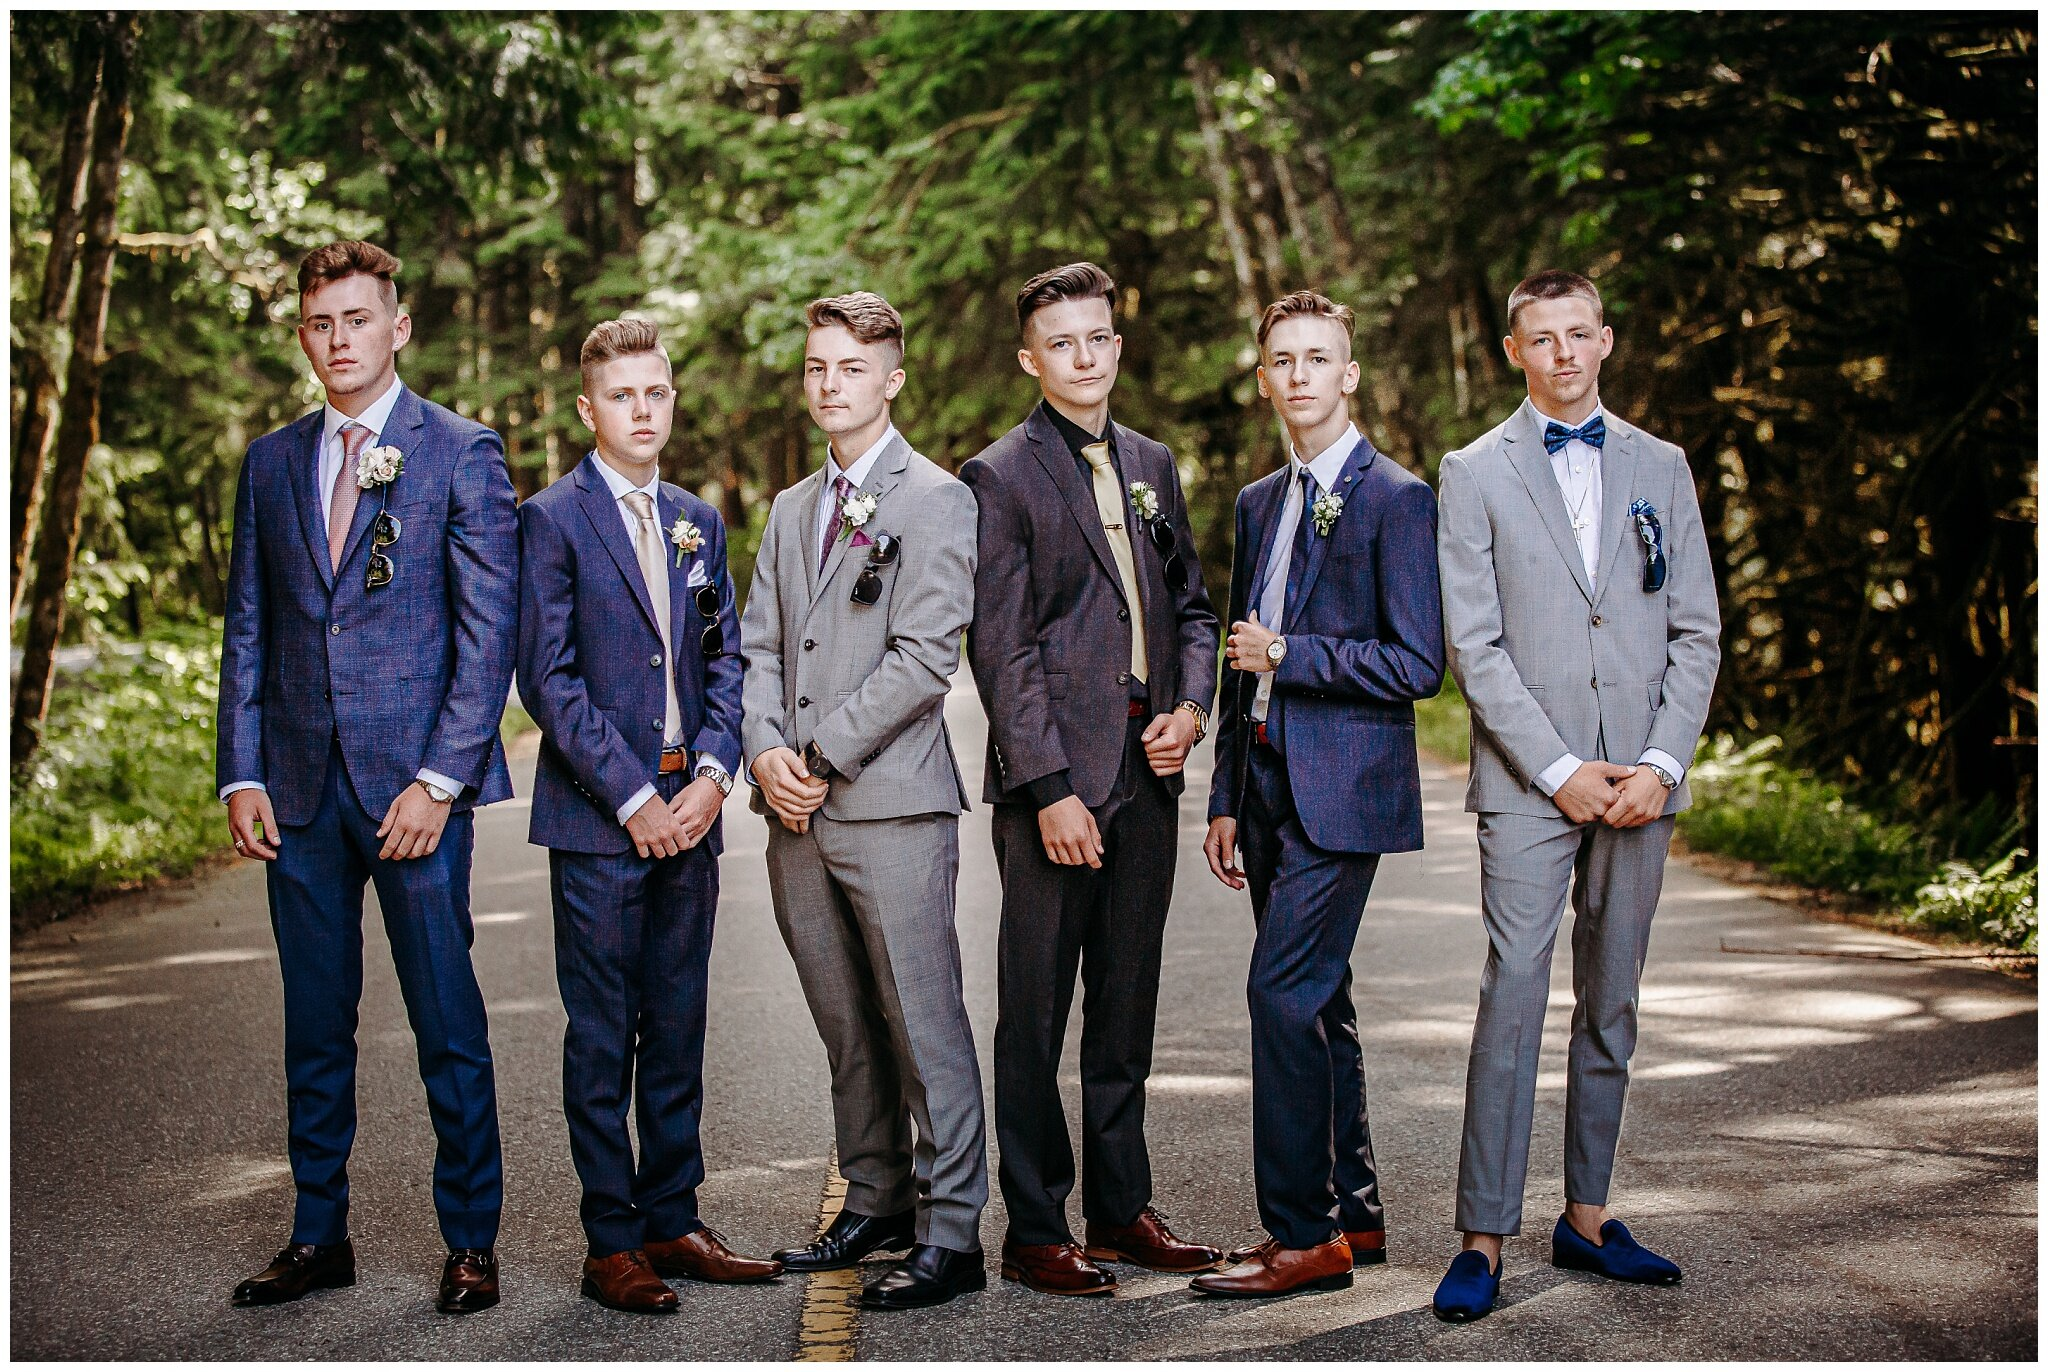 Abbotsford Highschool Prom Graduation Photographer 2019 Abbotsford fun bright_0027.jpg